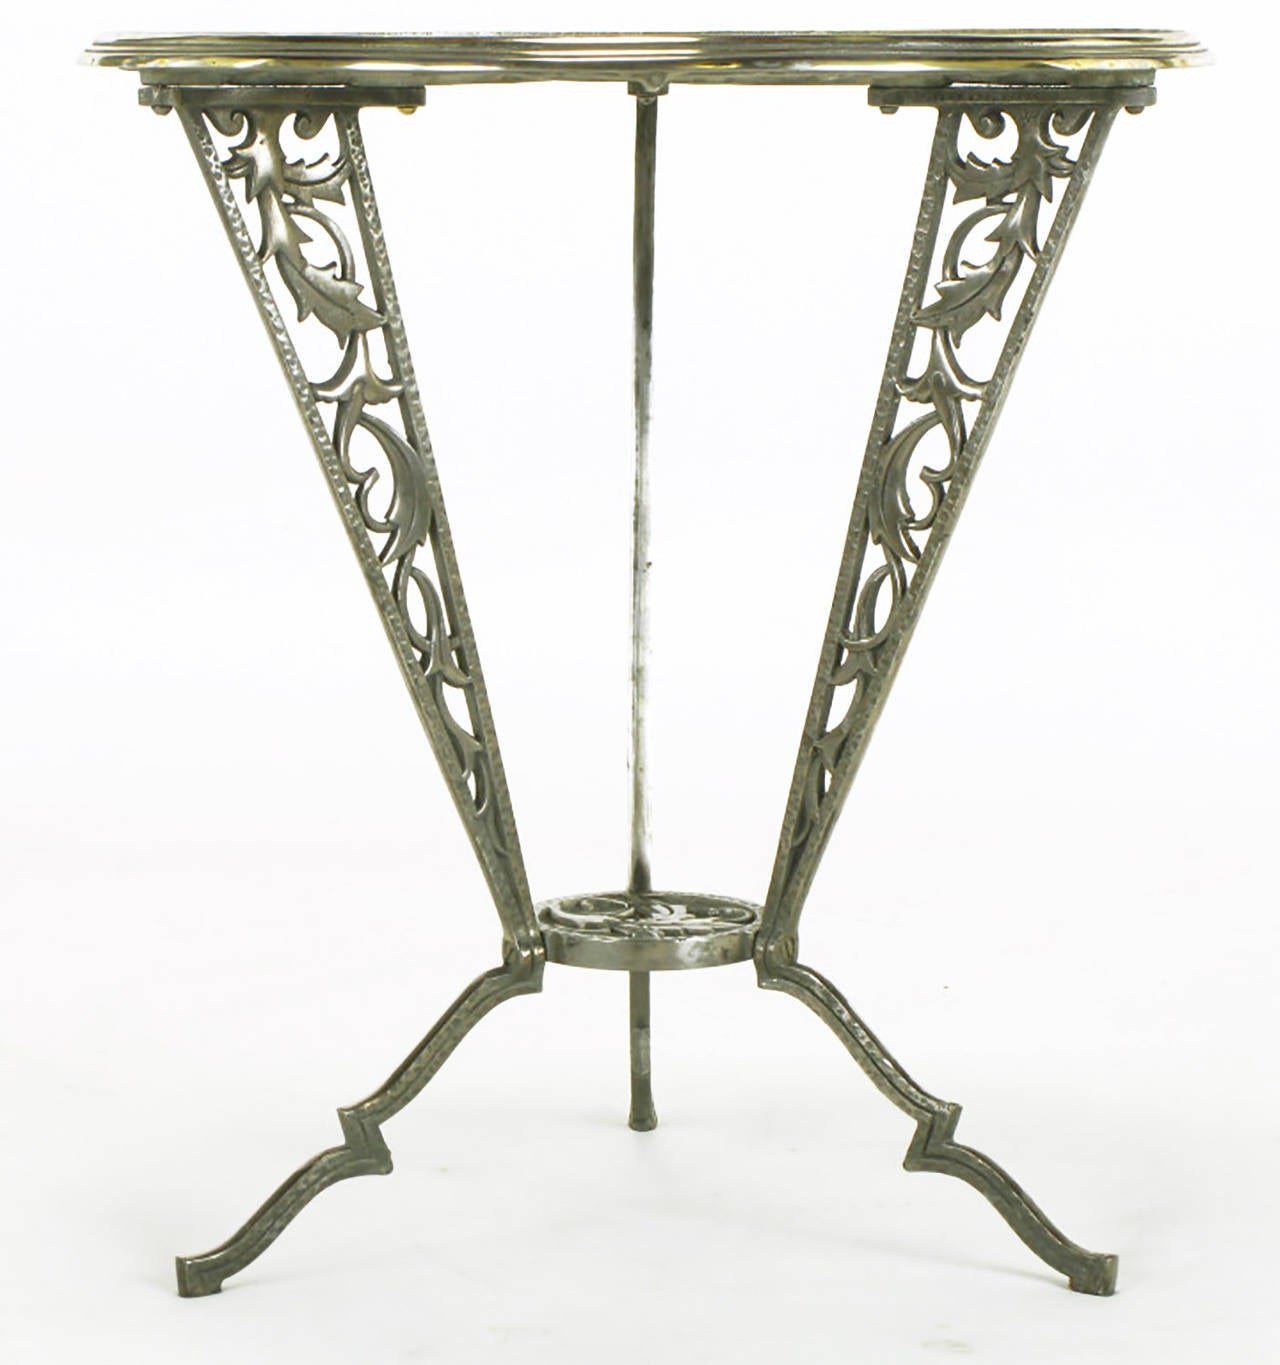 Rena Rosenthal Cast Metal Art Deco Table In Good Condition For Sale In Chicago, IL